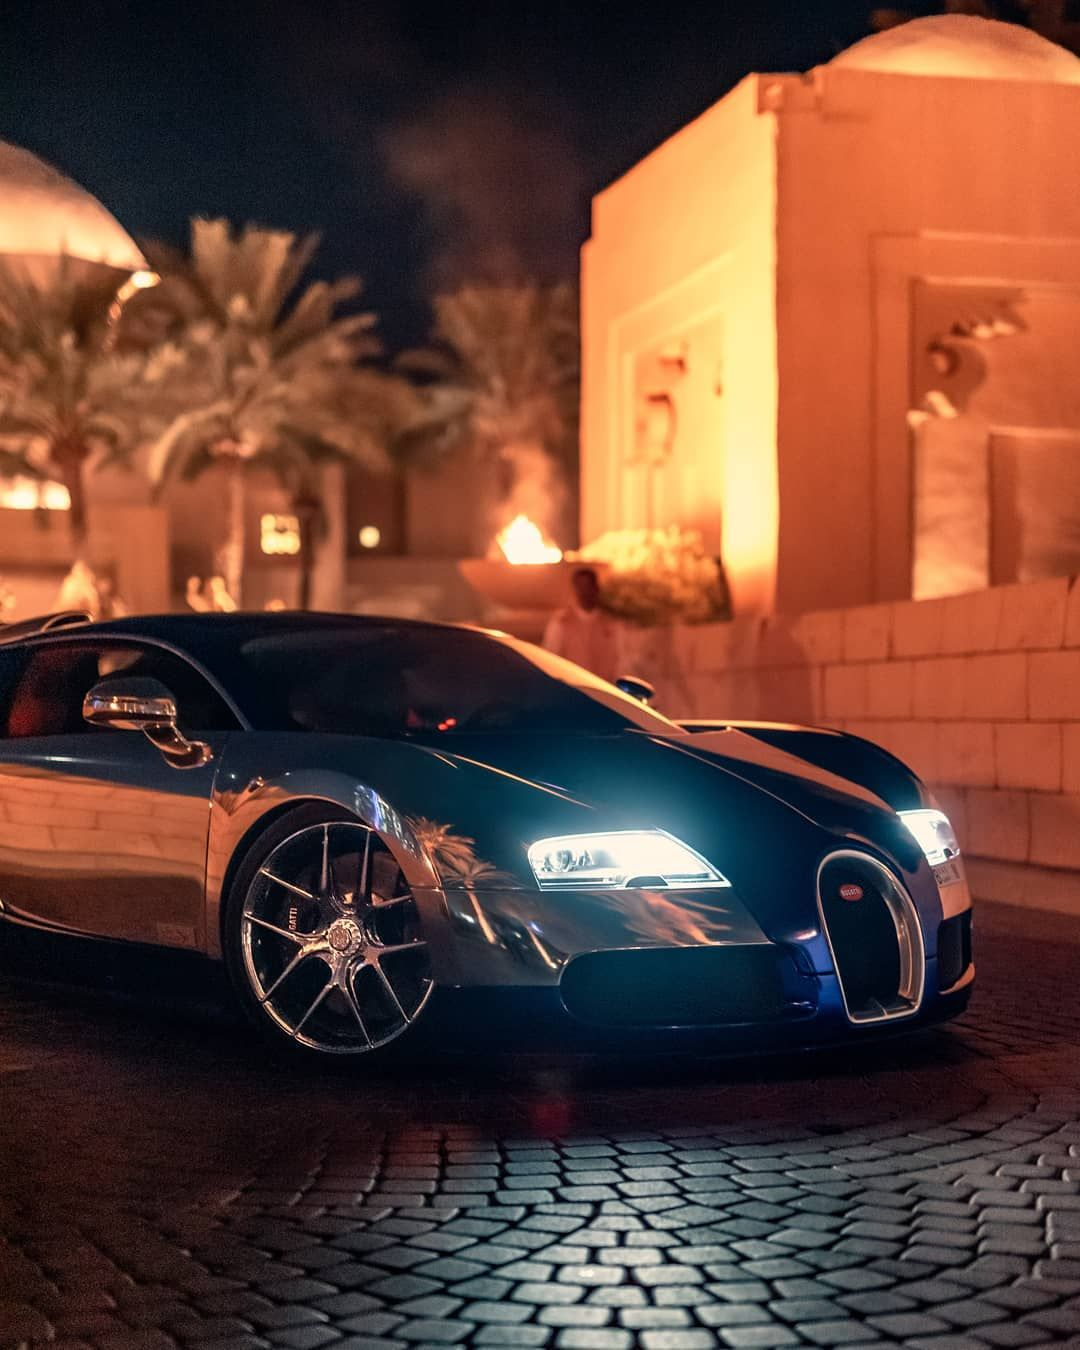 Pin By Bryan On Cars Bugatti Cars Cars Bugatti Veyron Veyron